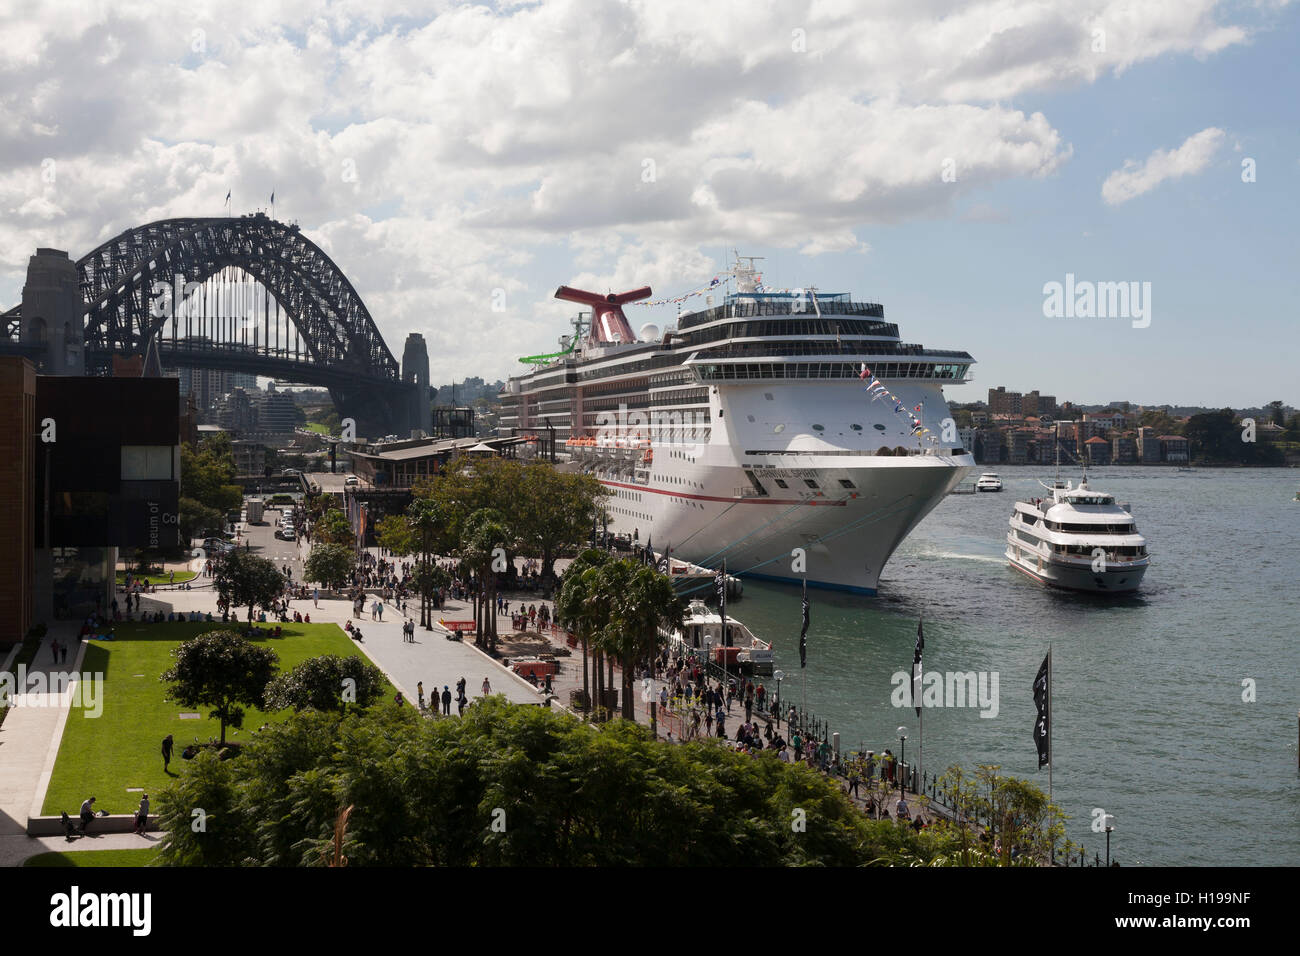 The Carnival Spirit Cruise Ship berthed at the Overseas Passenger Terminal Sydney Australia. - Stock Image